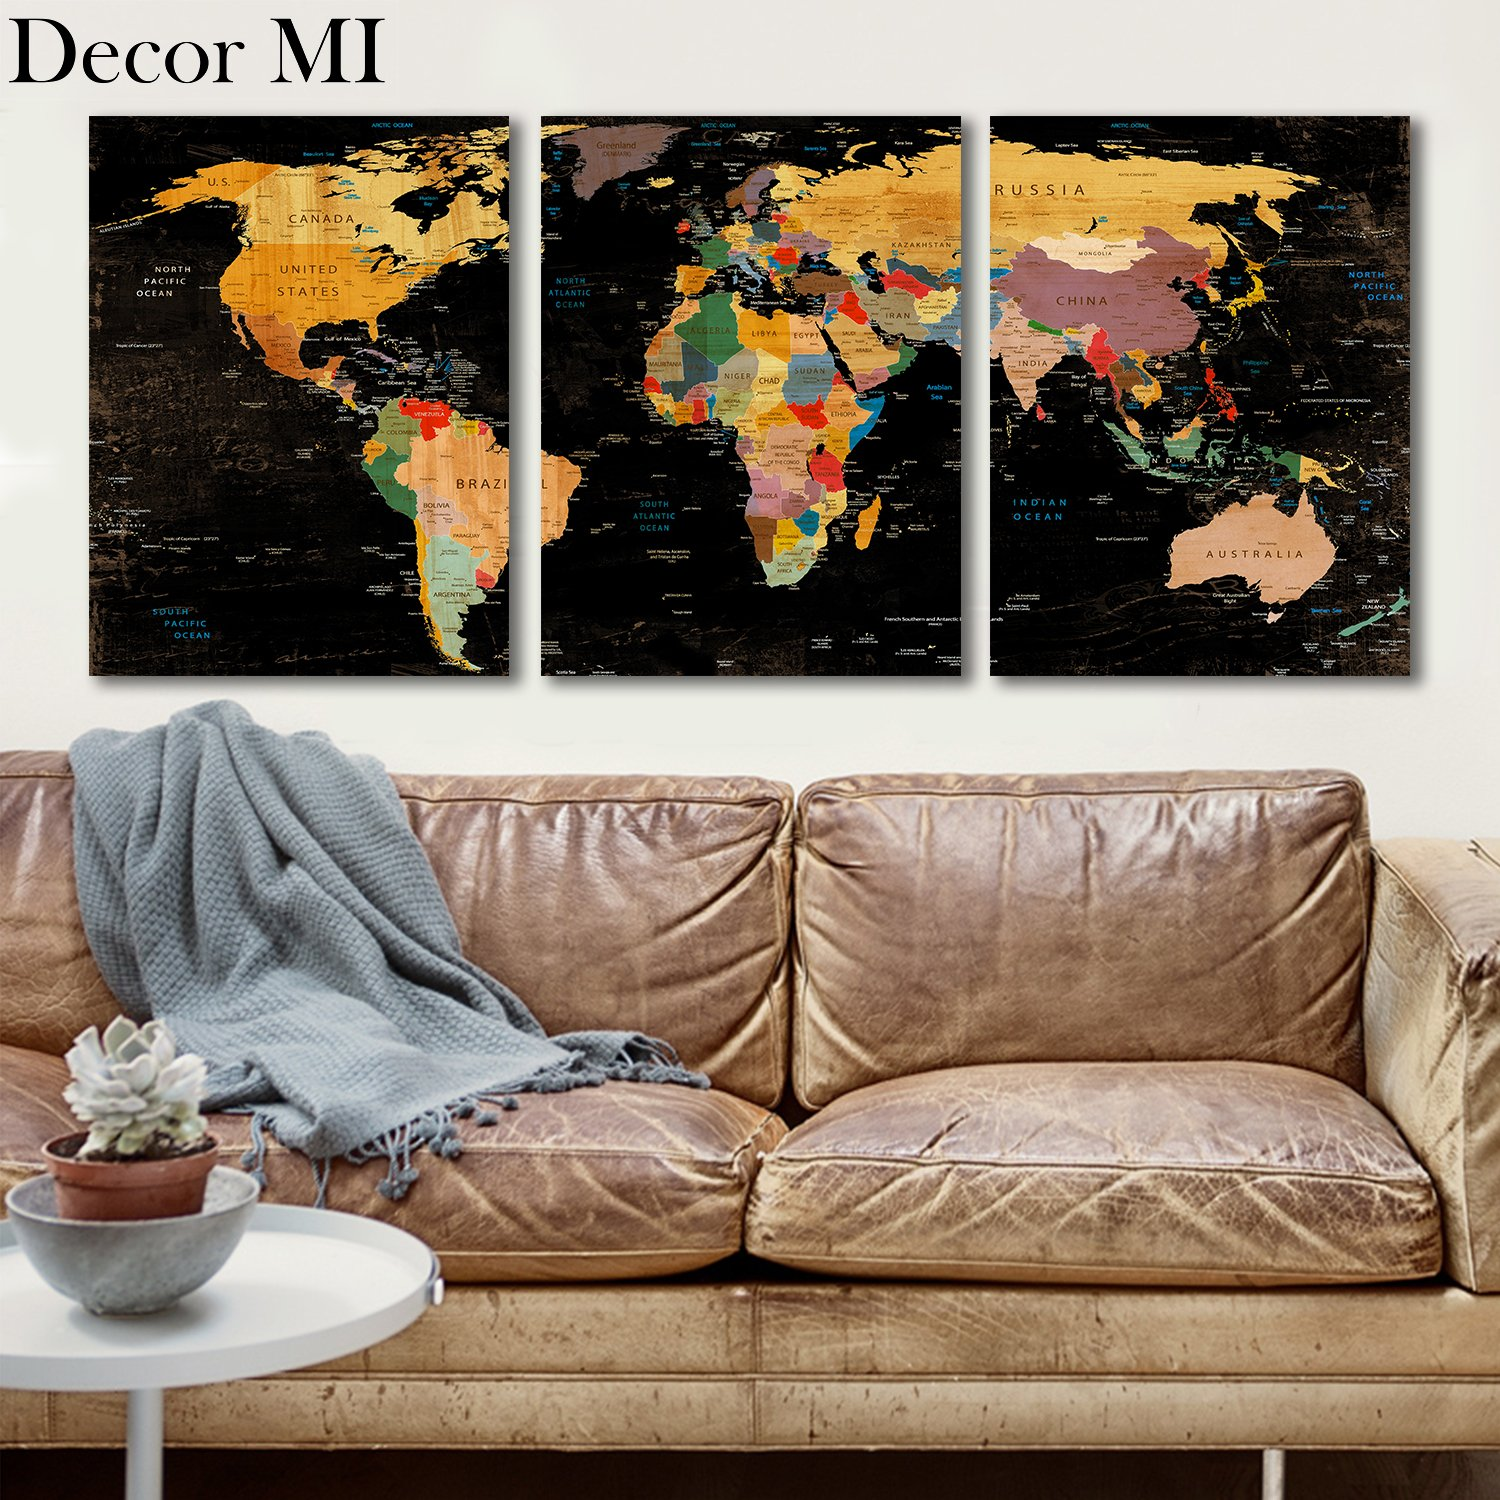 maps earth best ideas info cyclingheroes and globes map world the decor of decoration creative on images wall india